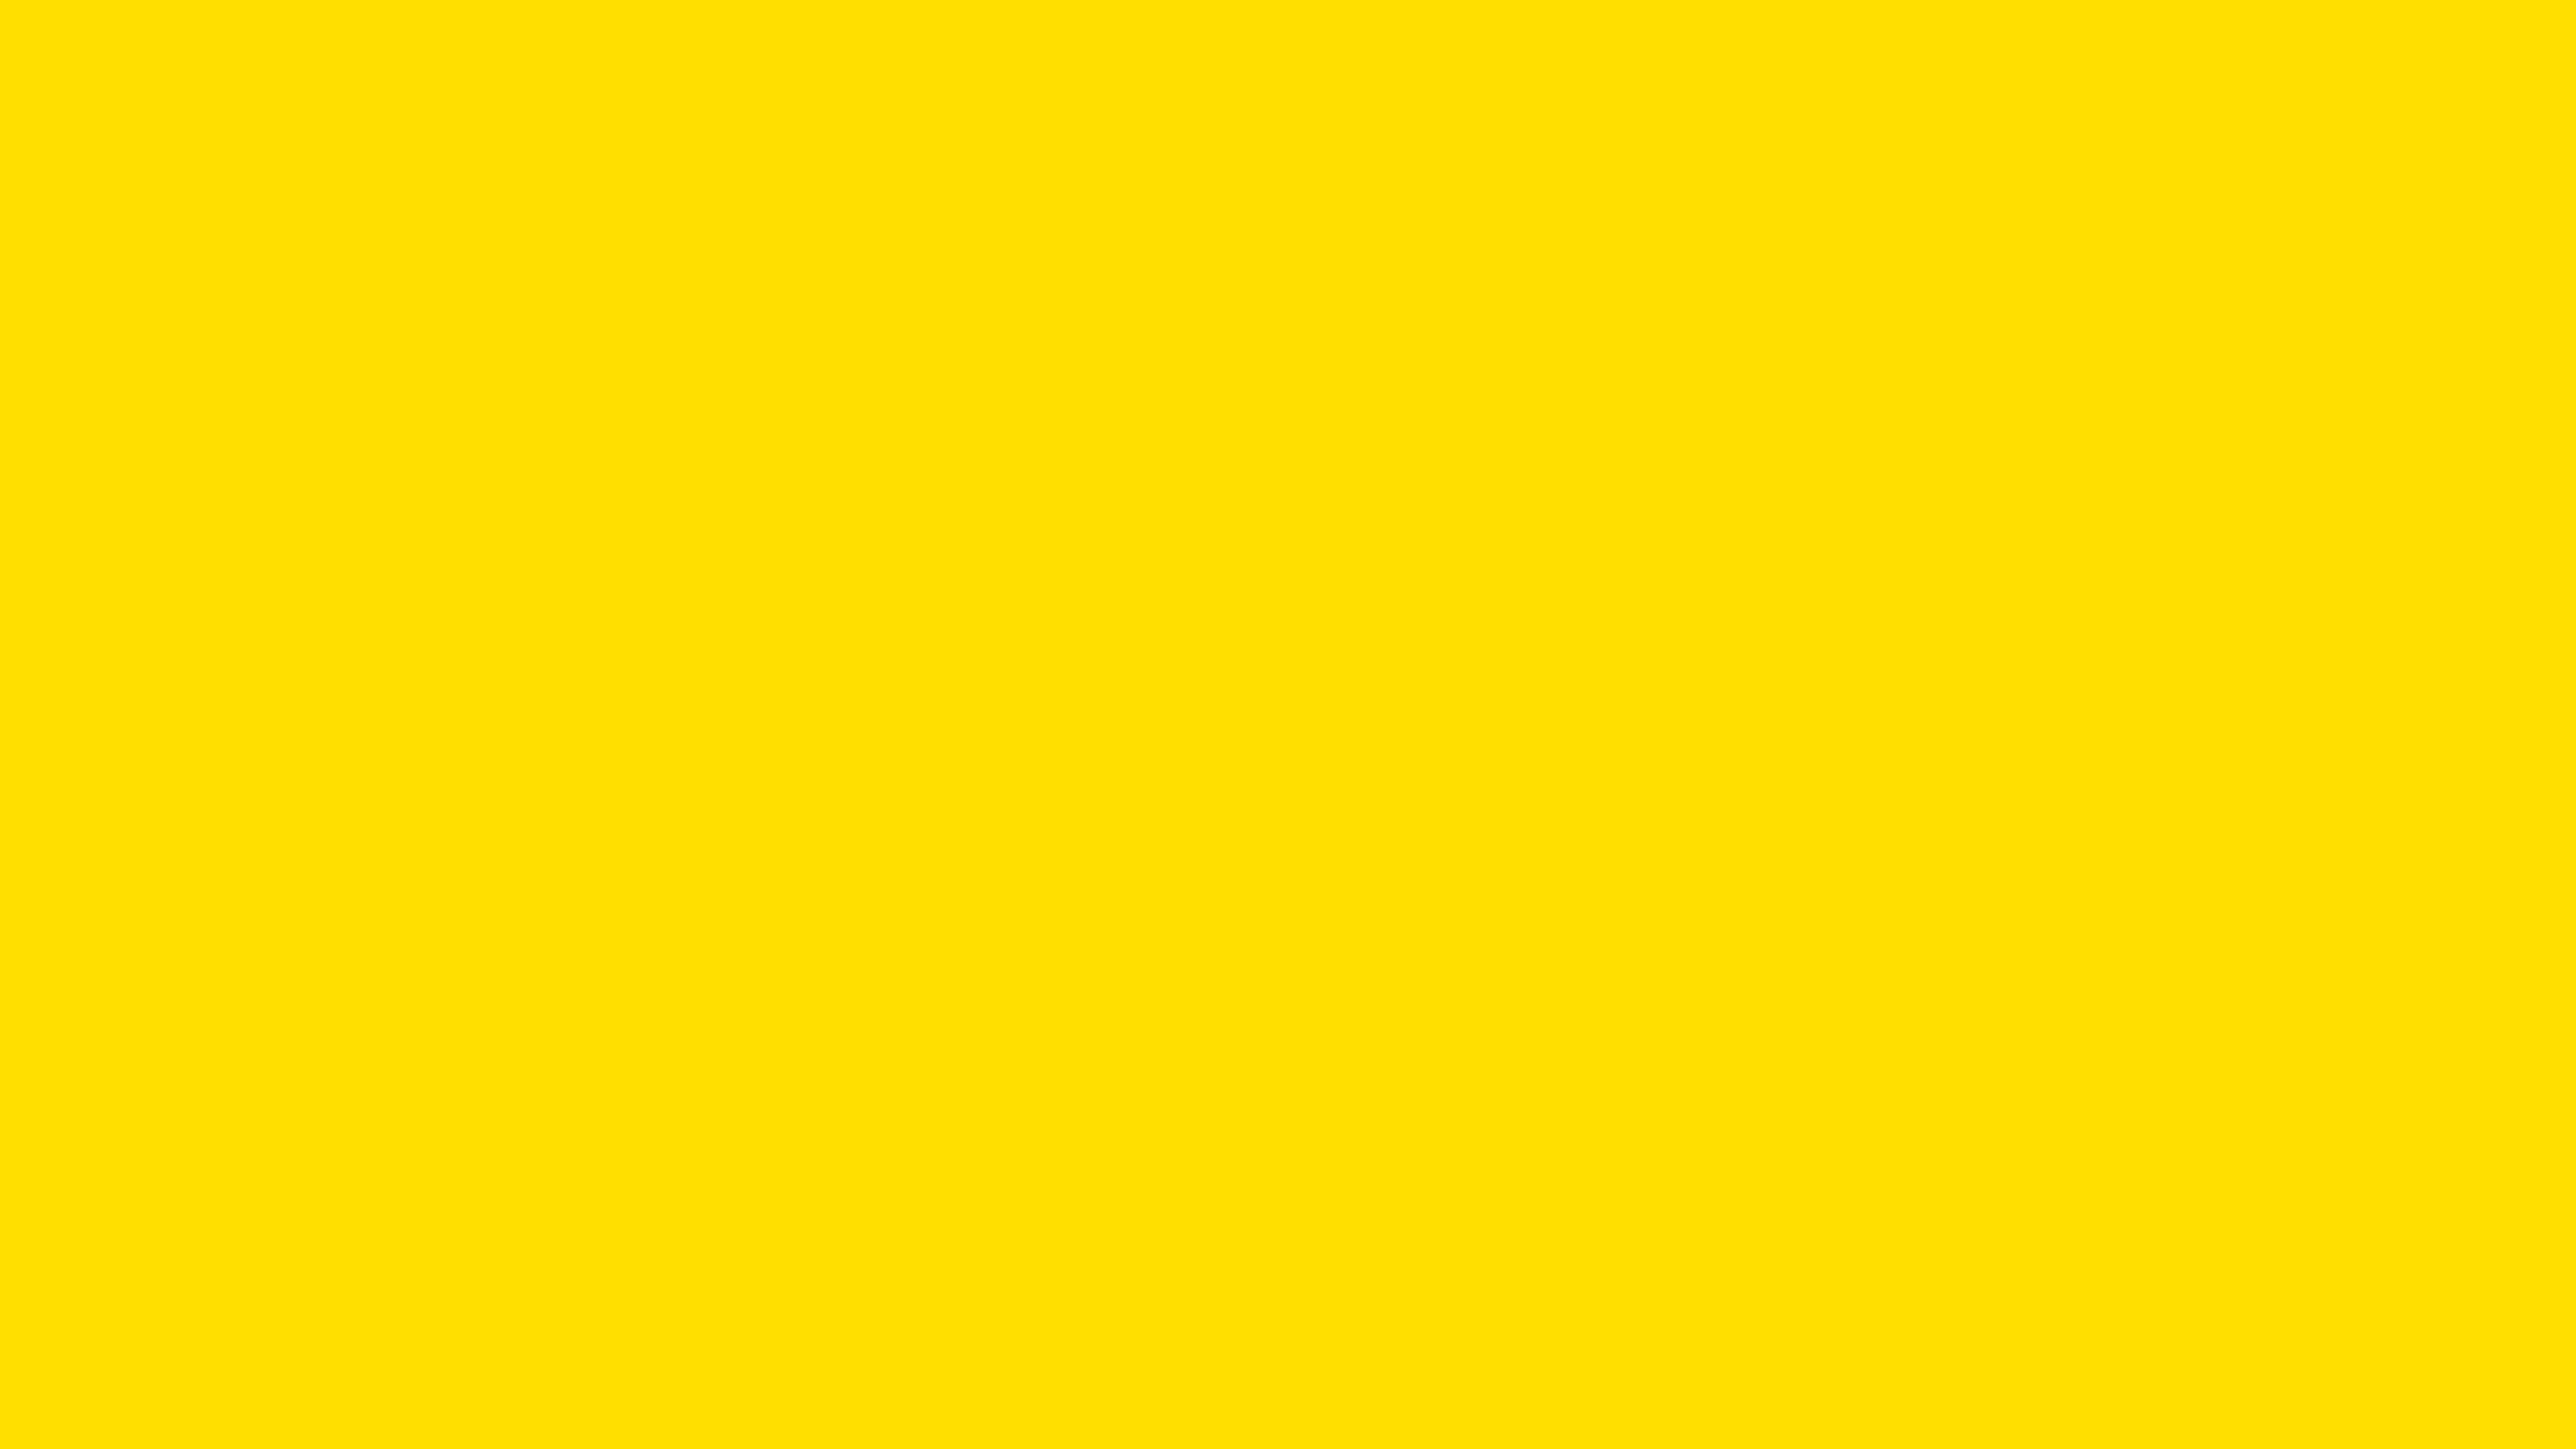 4096x2304 Yellow Pantone Solid Color Background